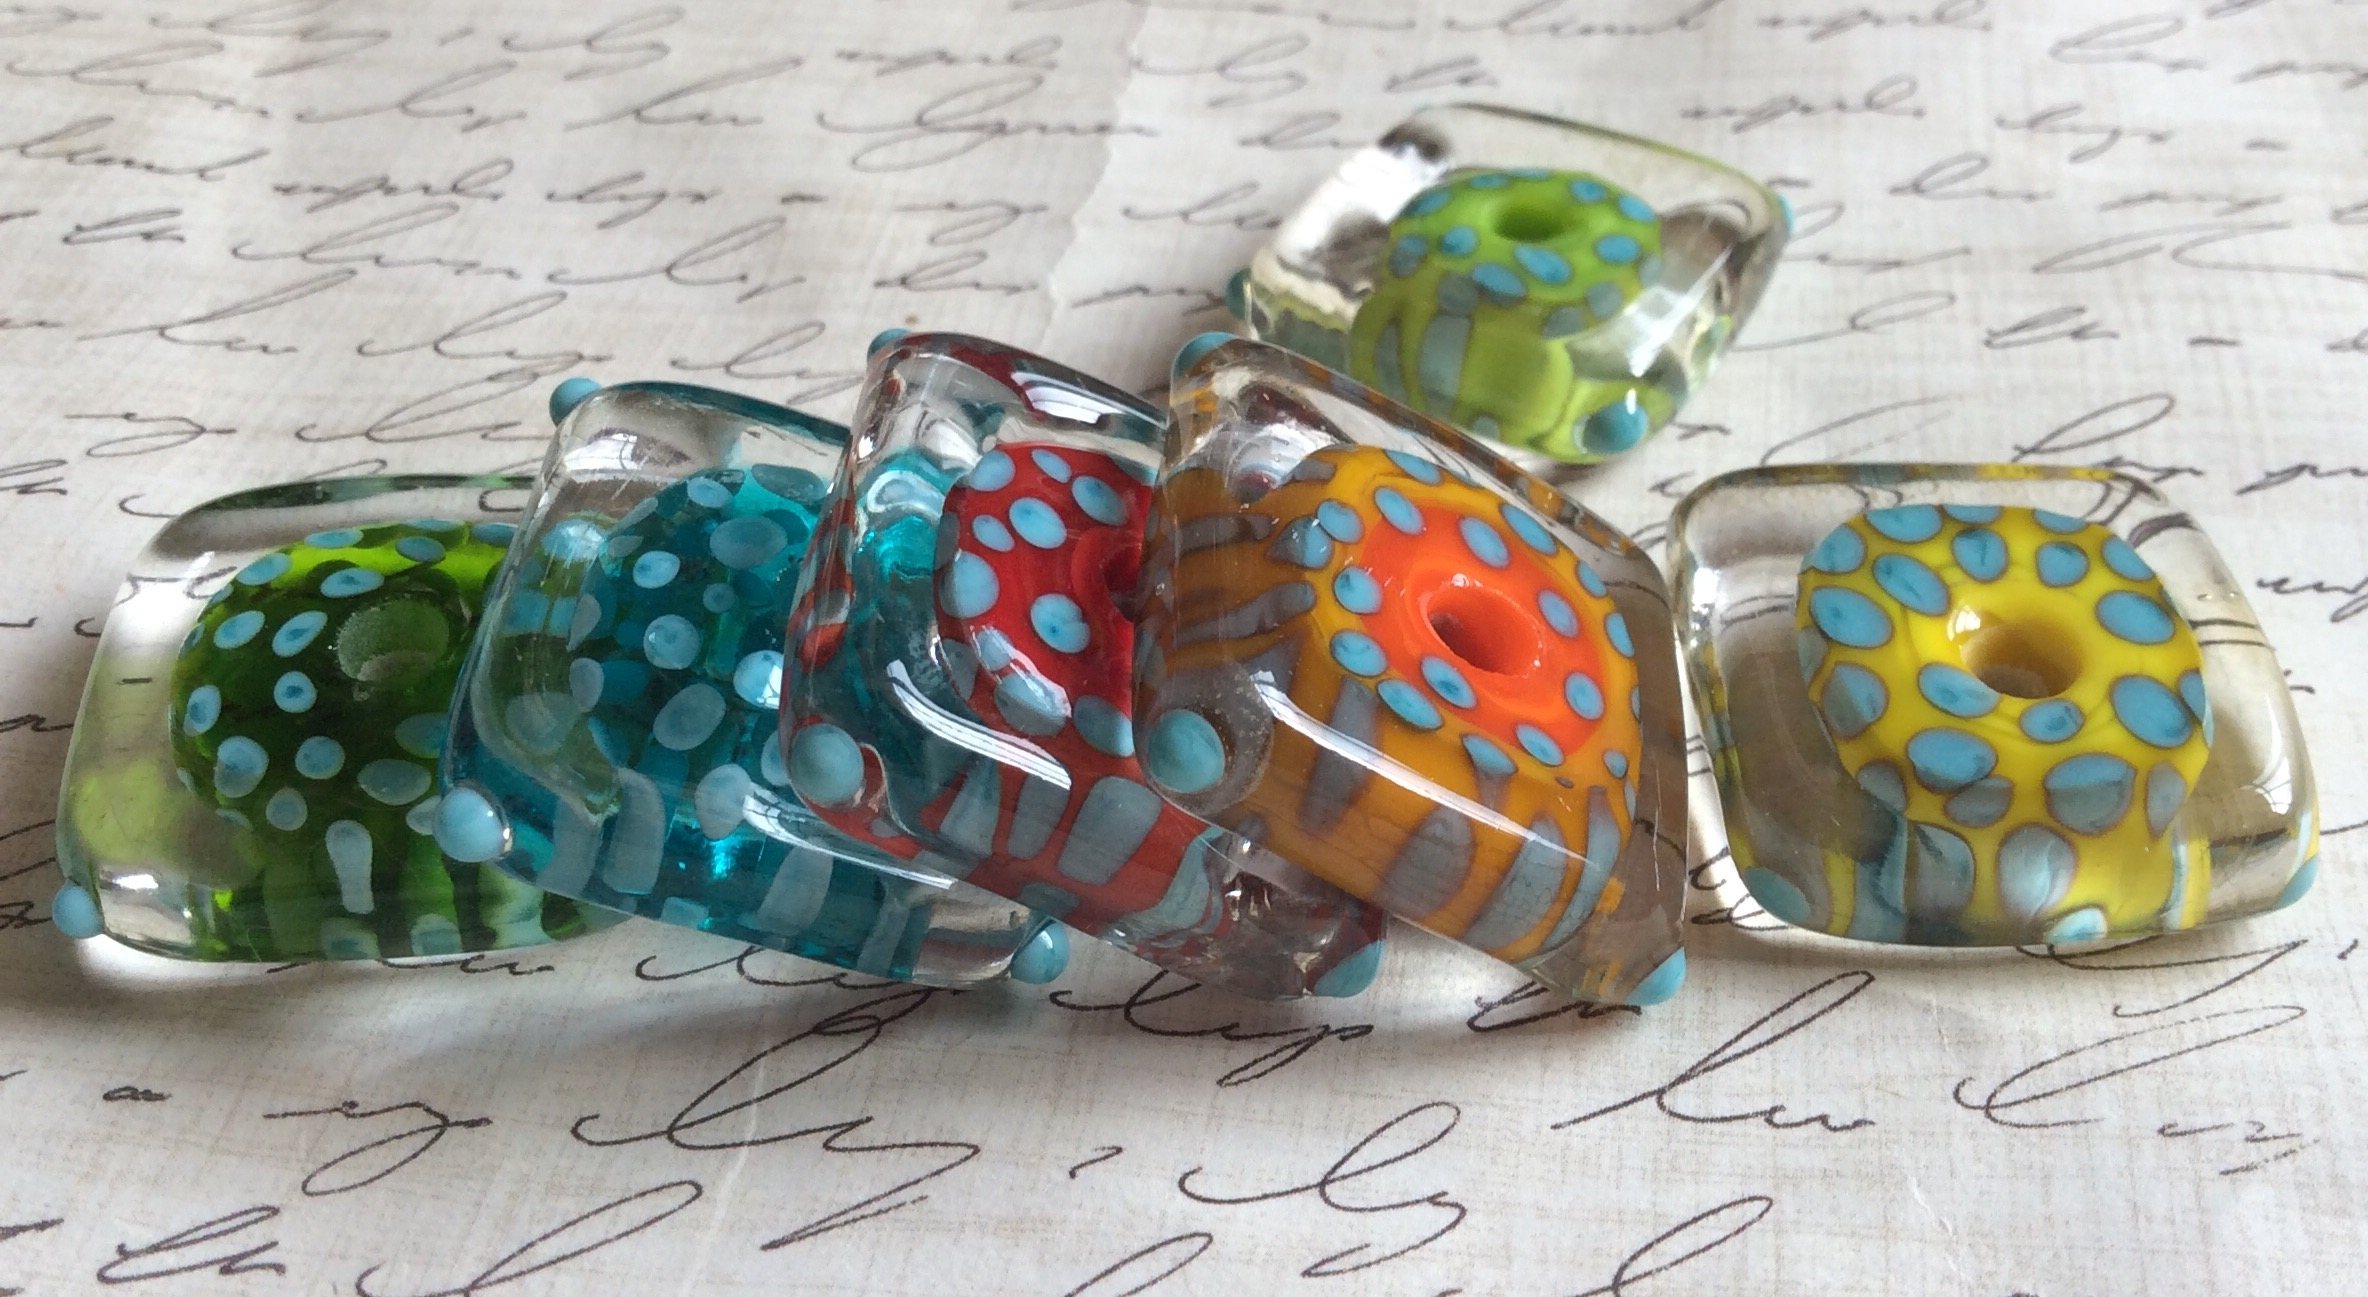 Jodie Marshall  Jodie makes colorful glass lampwork beads and wearable art.  Check out more creations on Jodie's blog:  http://marshalljodie.blogspot.com/